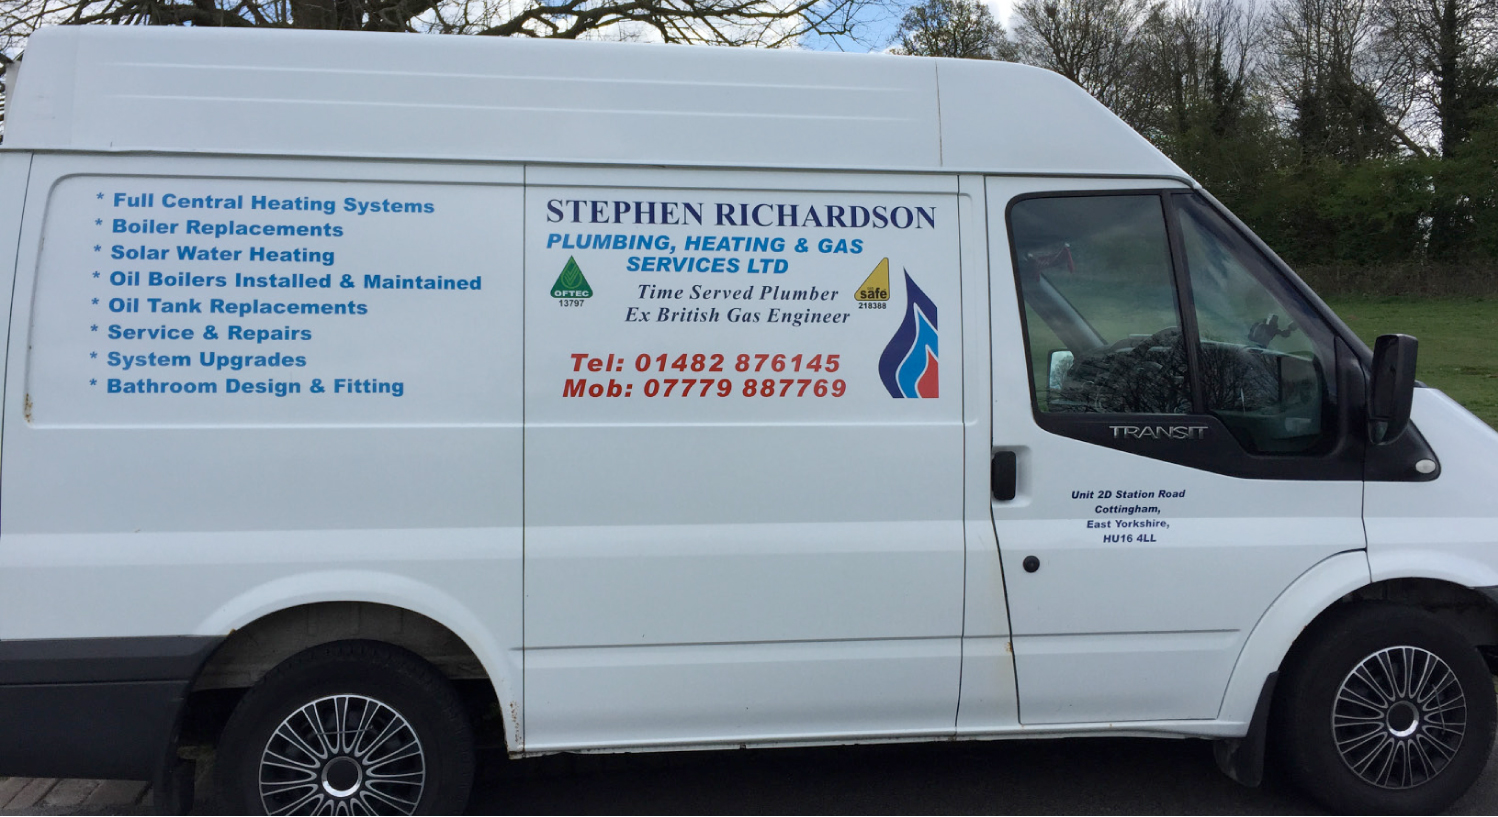 S Richardson Plumbing & Heating Services Beverley